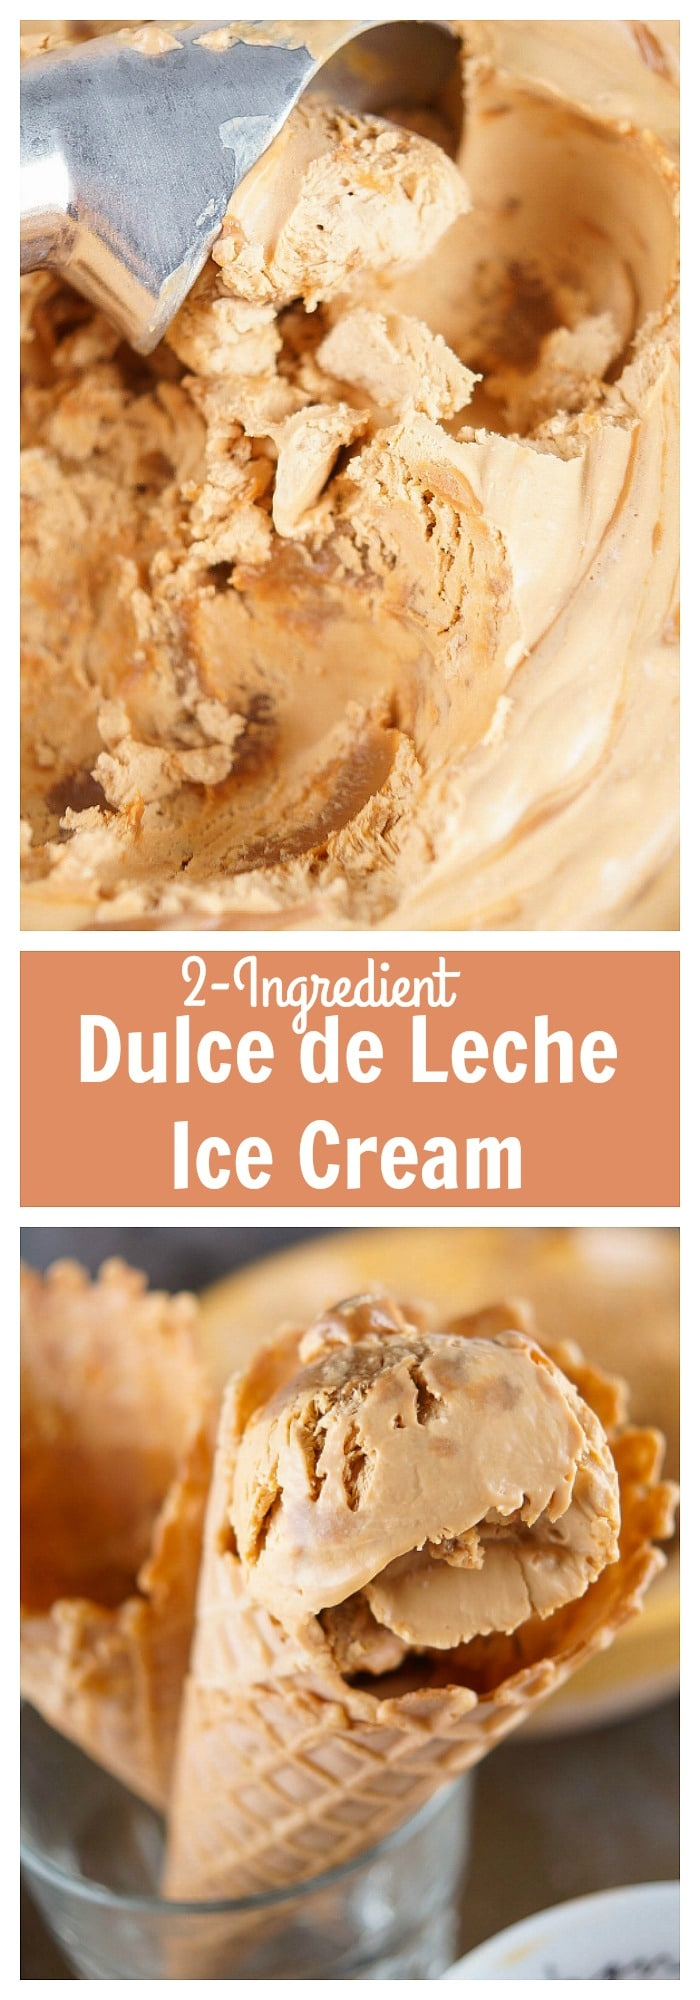 dulce de leche ice cream 2 ingredient dulce de leche ice cream ...